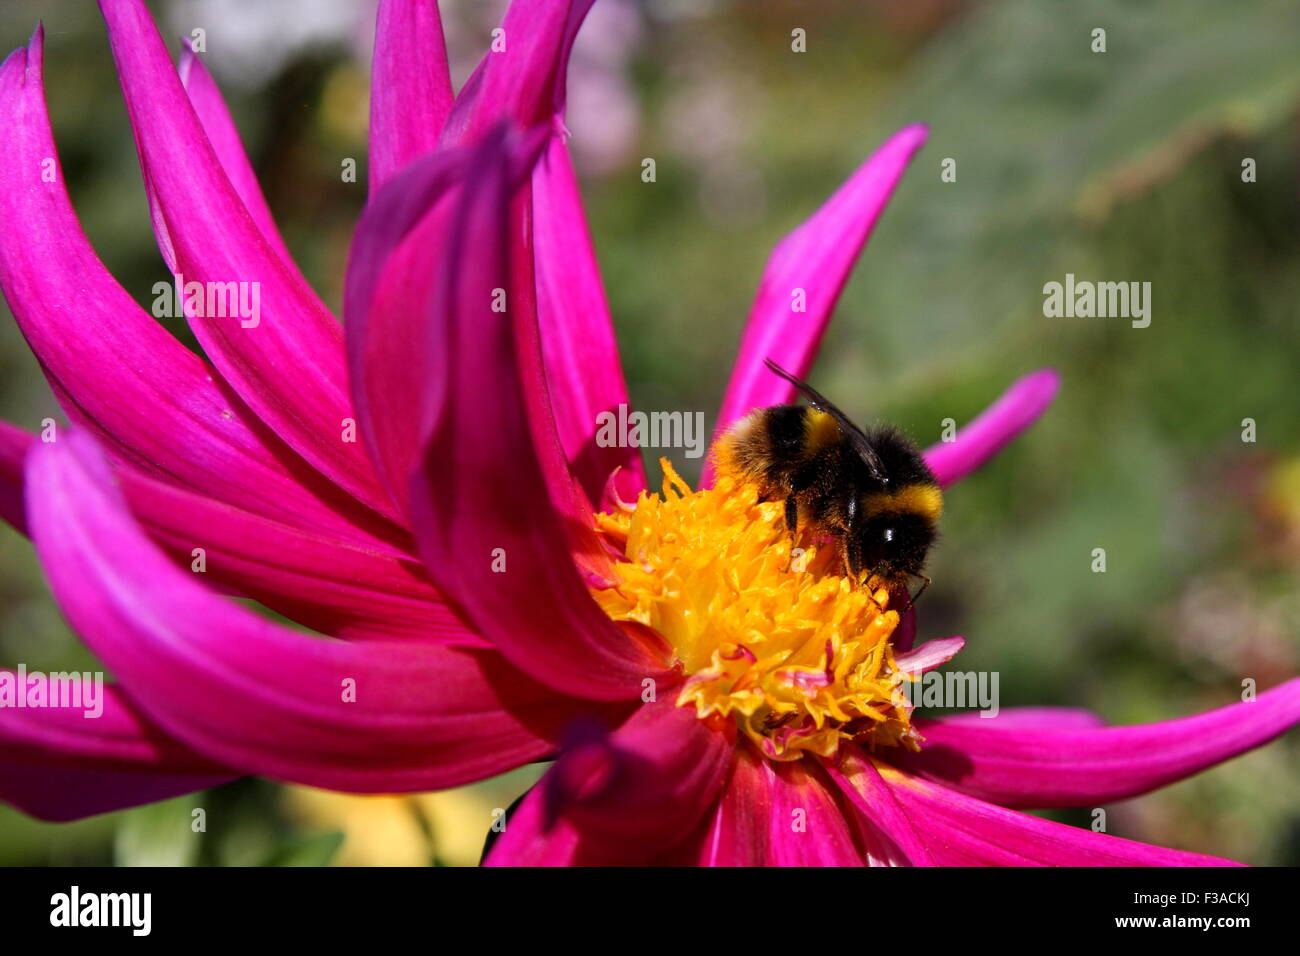 Bee collecting nectar on flower - Stock Image